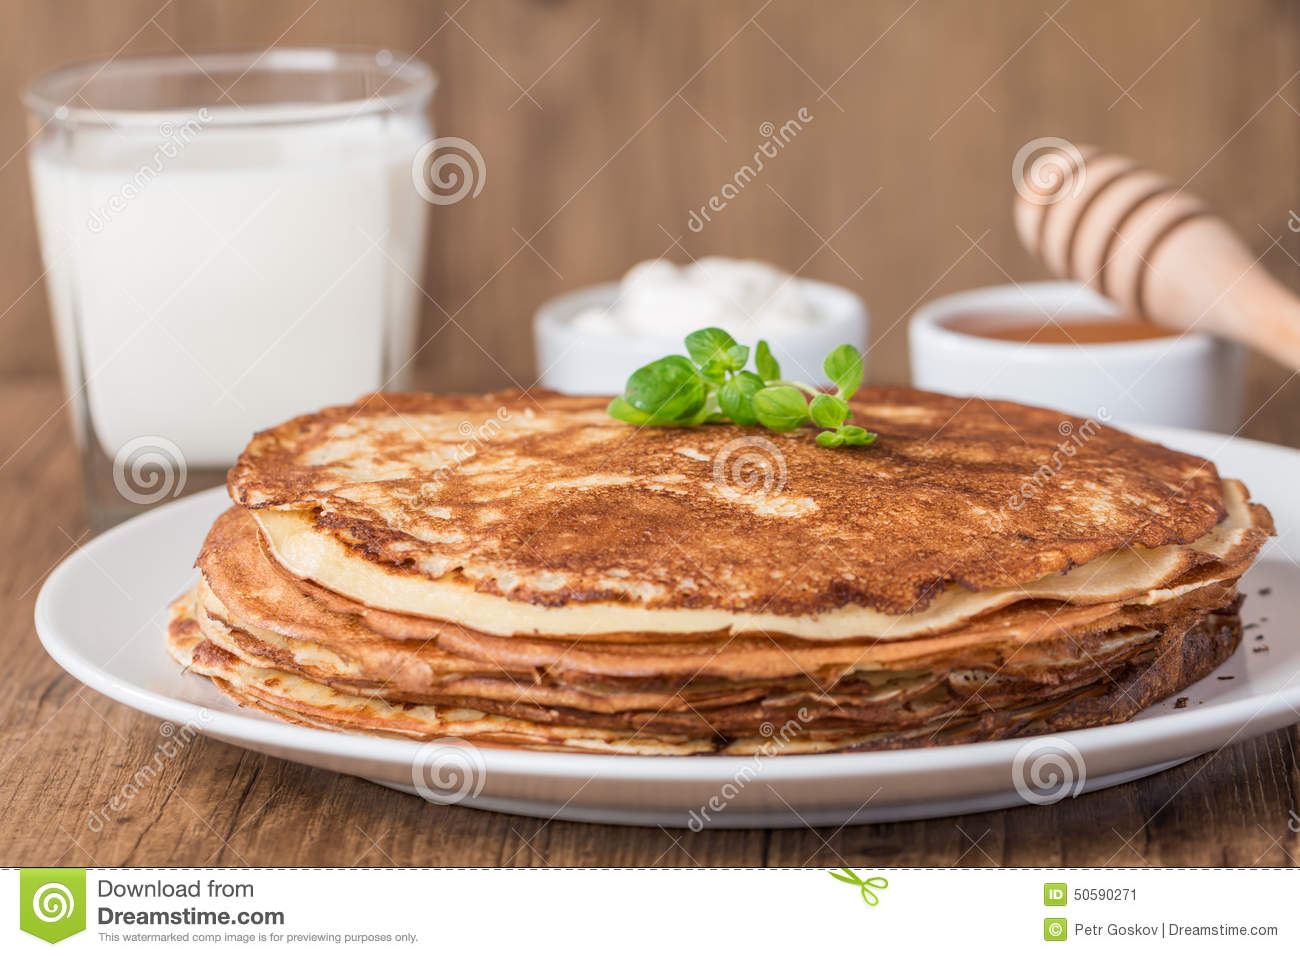 How to cook pancakes on sour cream 5